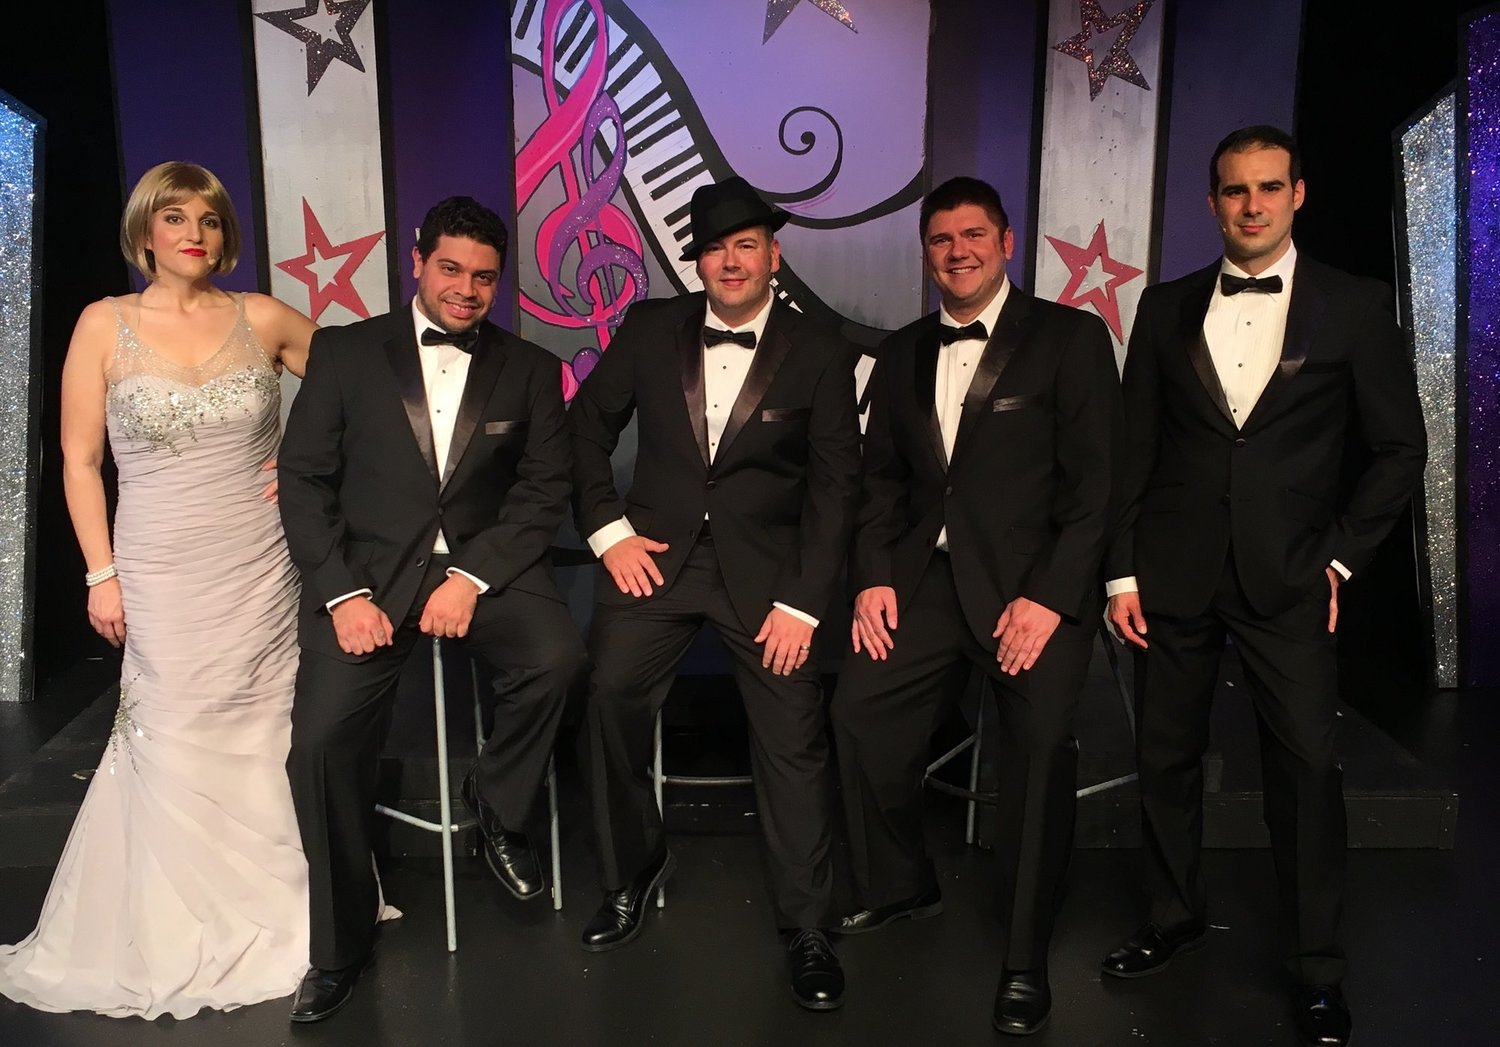 BWW Review: THE RAT PACK LOUNGE at Connecticut Cabaret Theatre